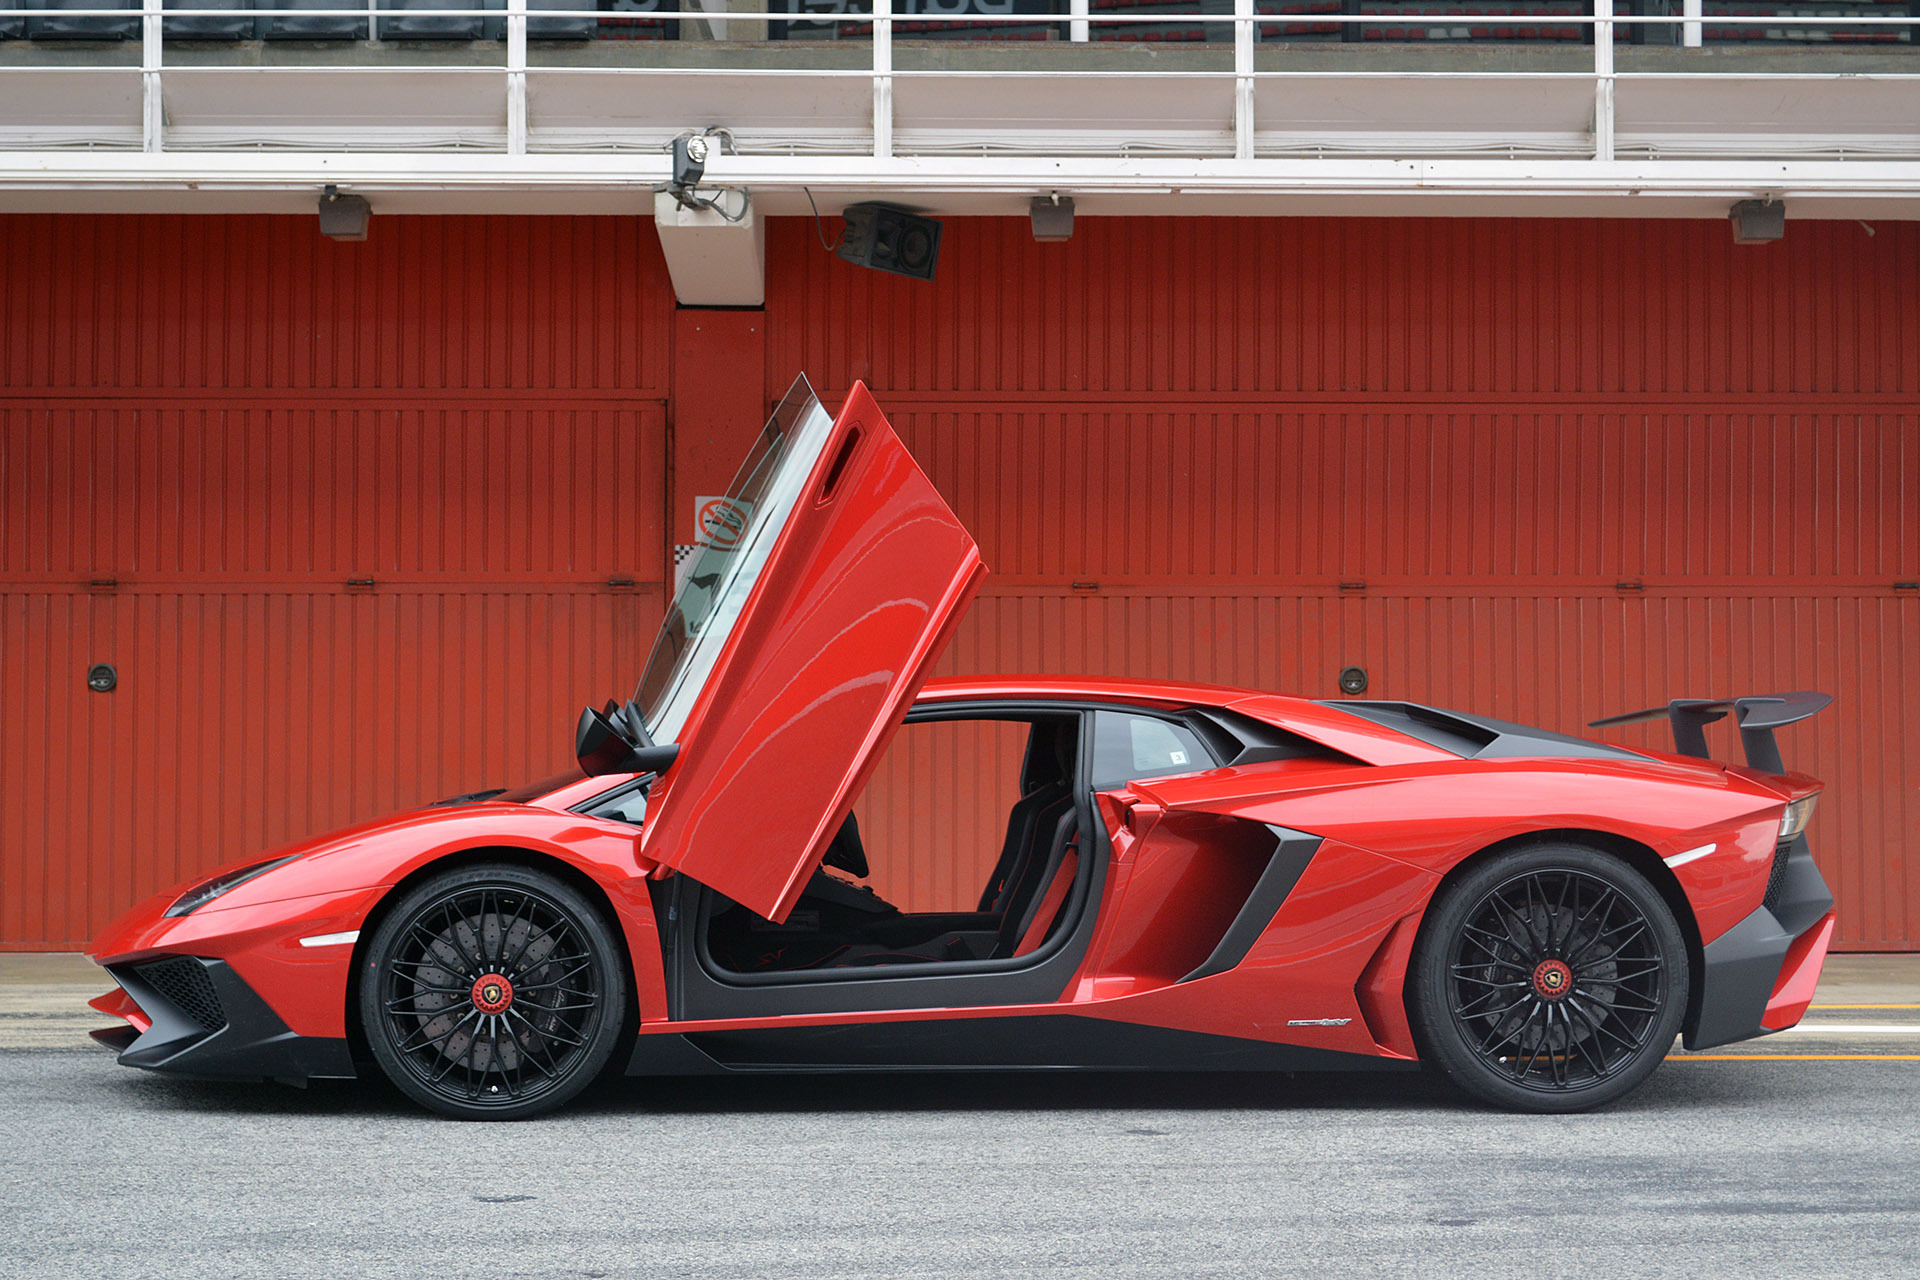 2016 Lamborghini Aventador Lp 750 4 Superveloce First Drive Photo